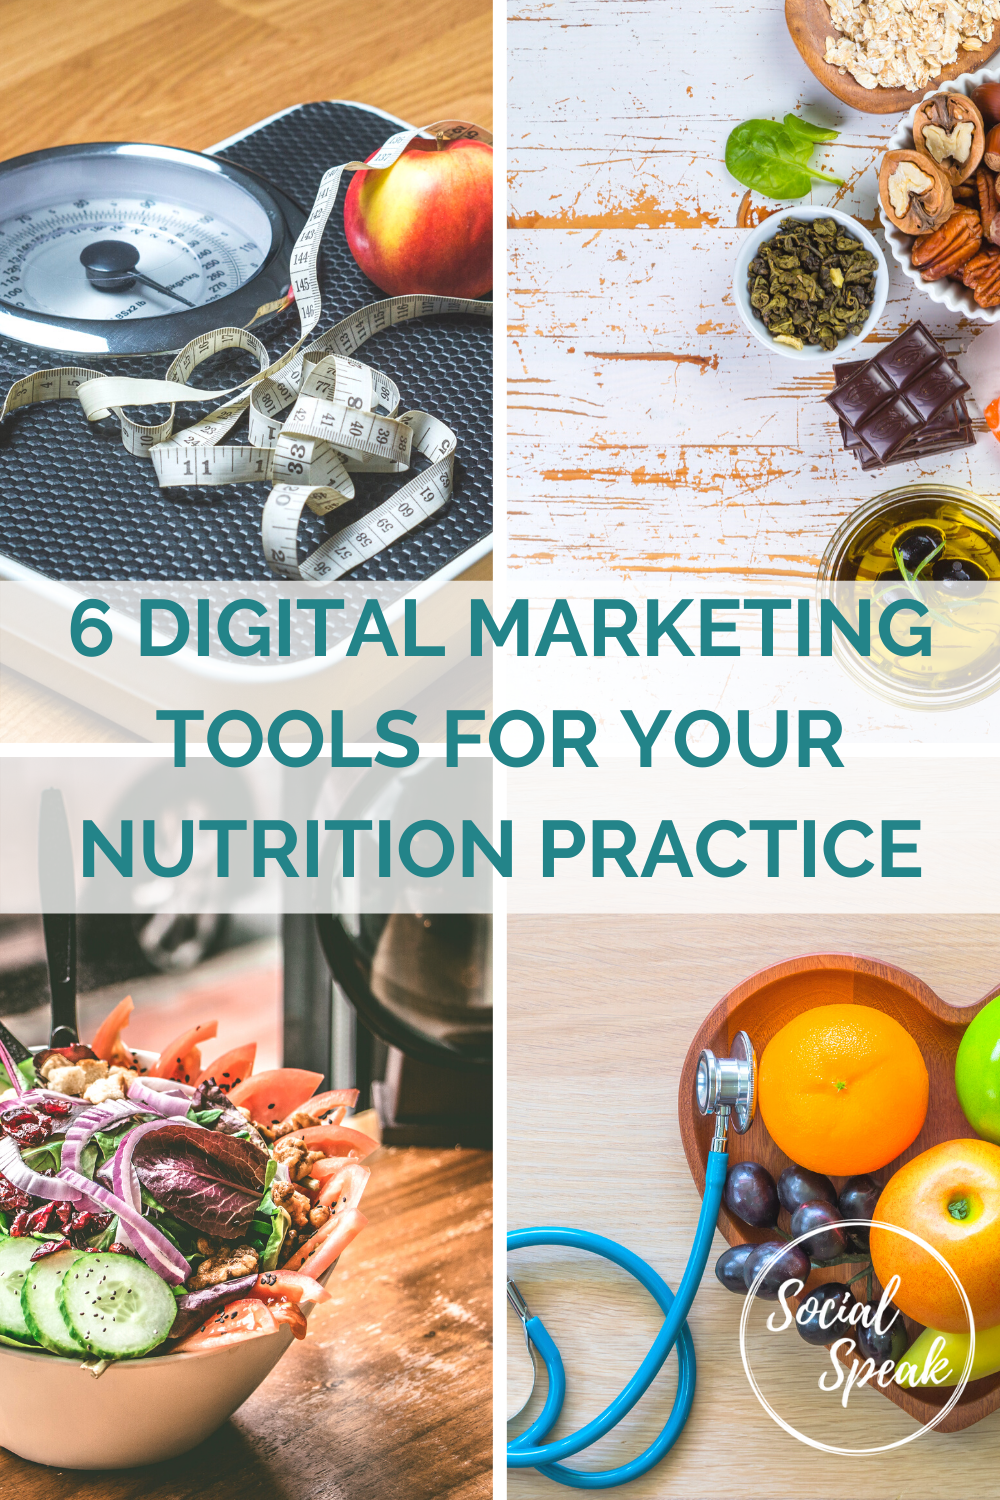 6 Digital Marketing Tools for your Nutrition Practice